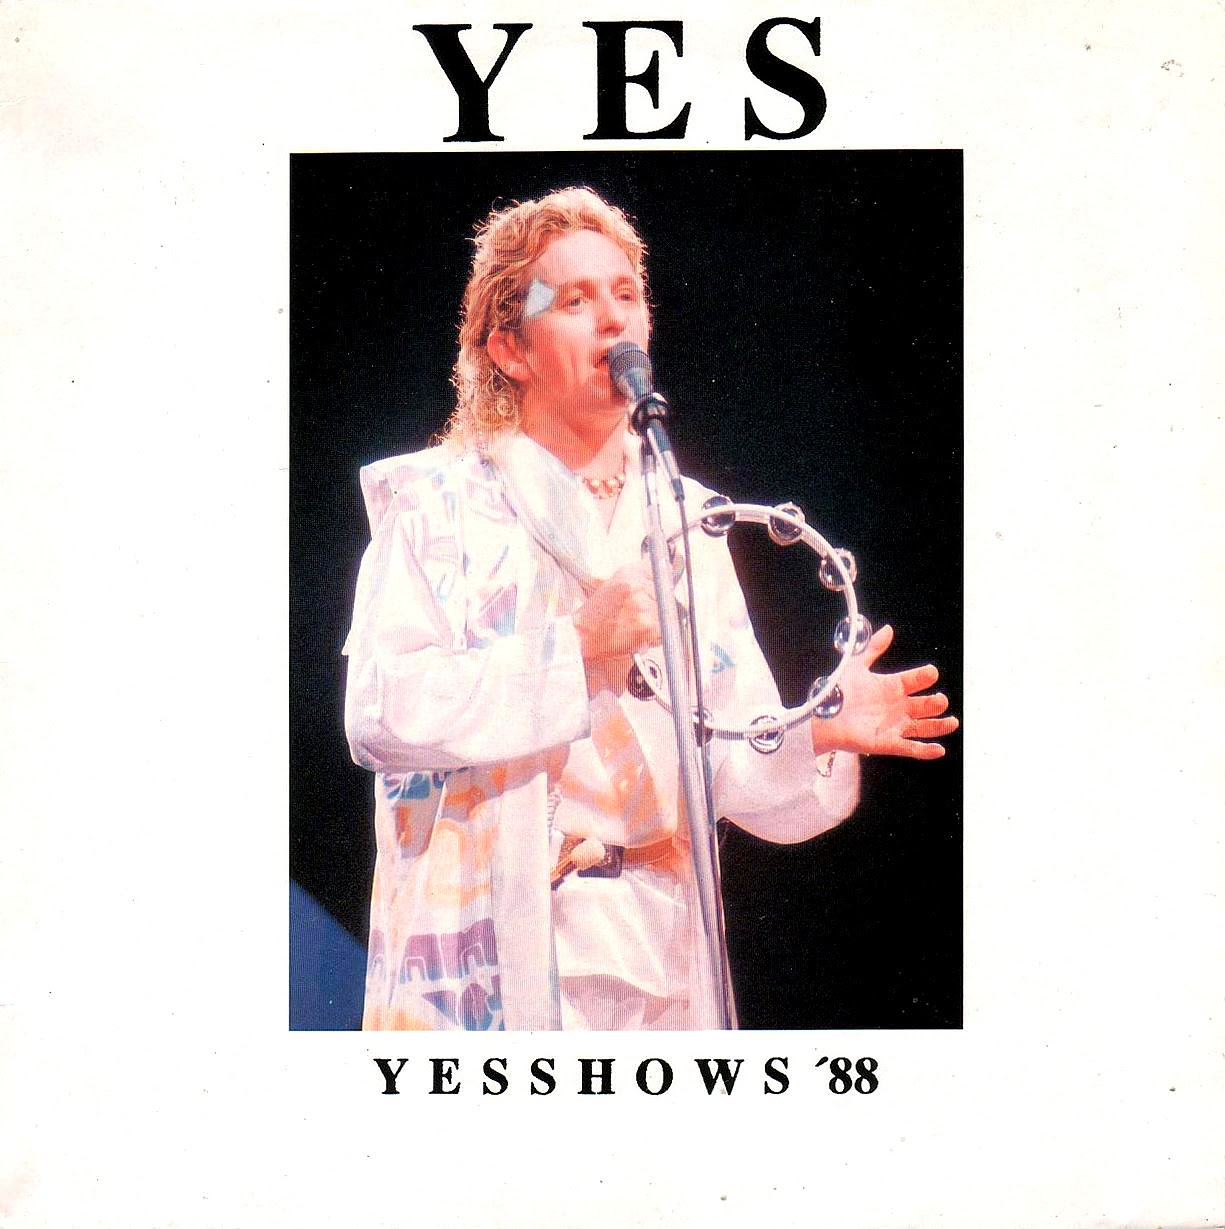 Yes1988-02-19TheSummitHoustonTX (3).jpg